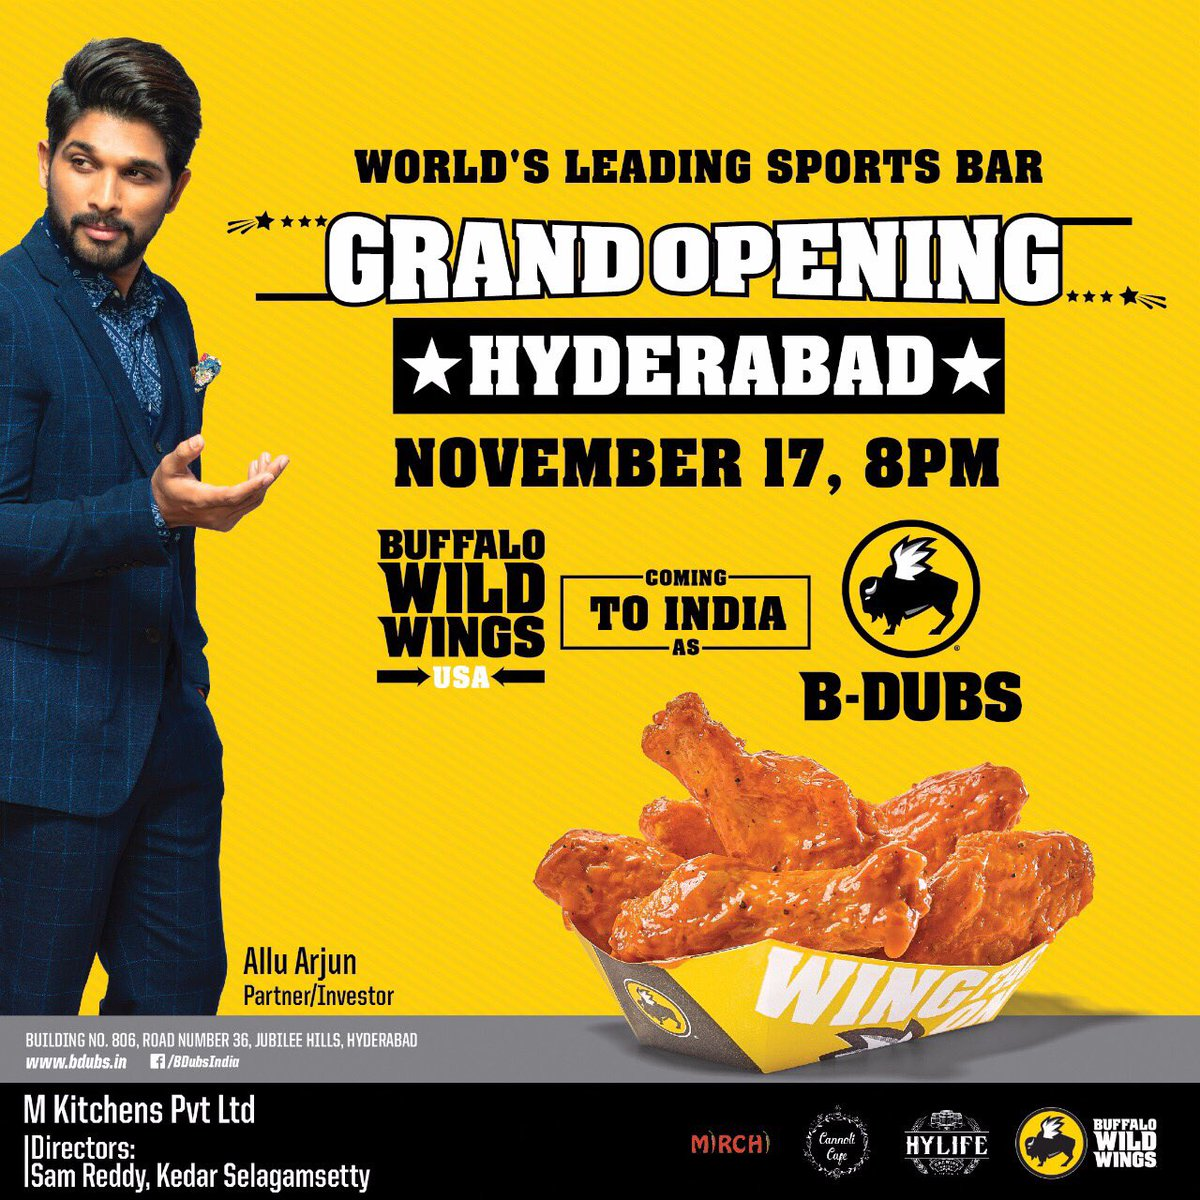 Congratulations @alluarjun  Our #StylishStar Brings &quot;B-BUBS&quot; To India  And Inaugurated Today In #Hyderabad  <br>http://pic.twitter.com/bIWyj2hWQX